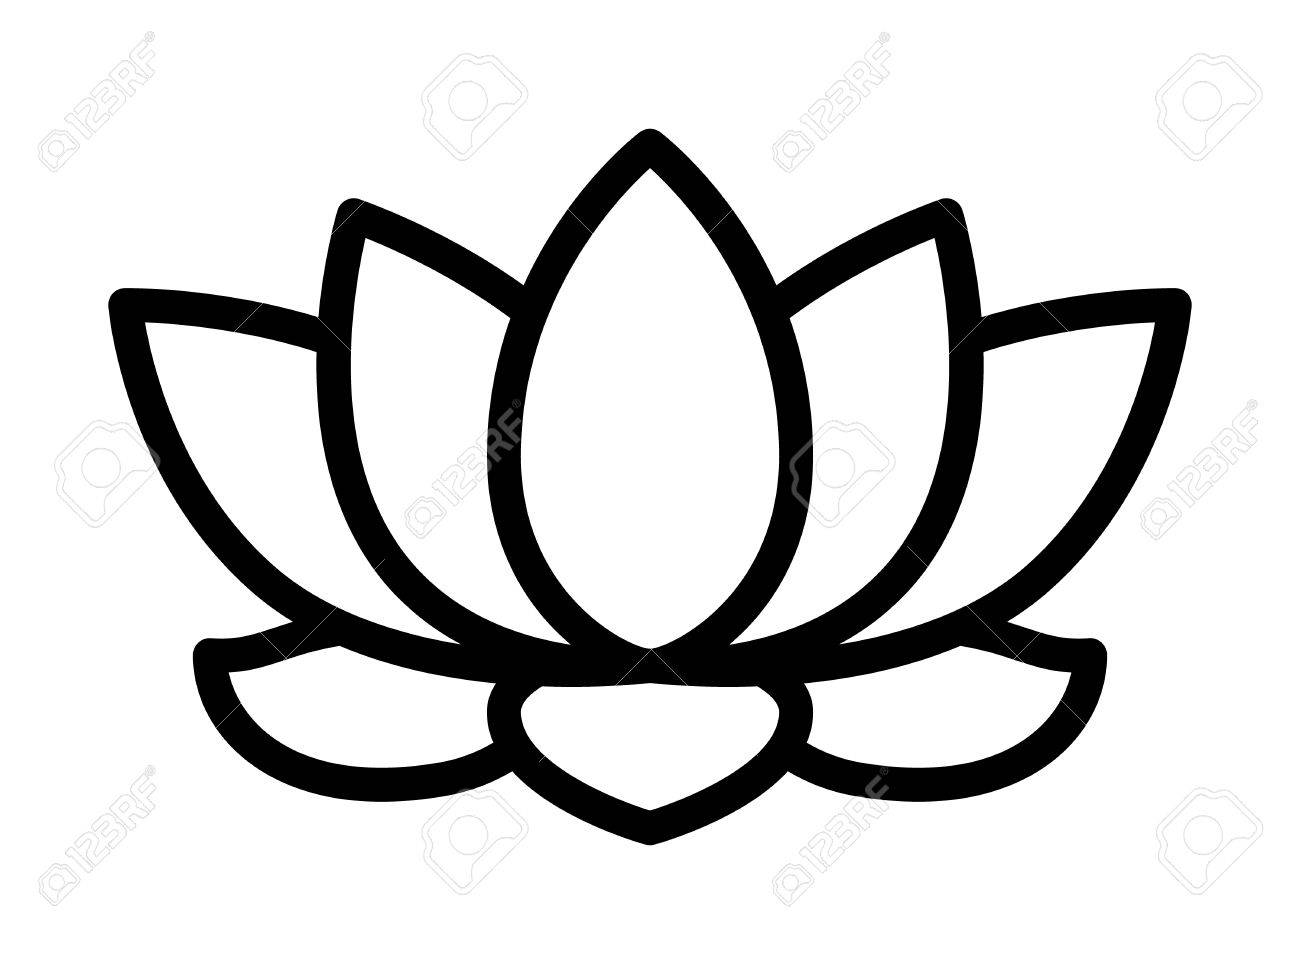 lotus flower blossom line art icon for apps and websites royalty rh 123rf com lotus flower clipart images lotus flower clipart images